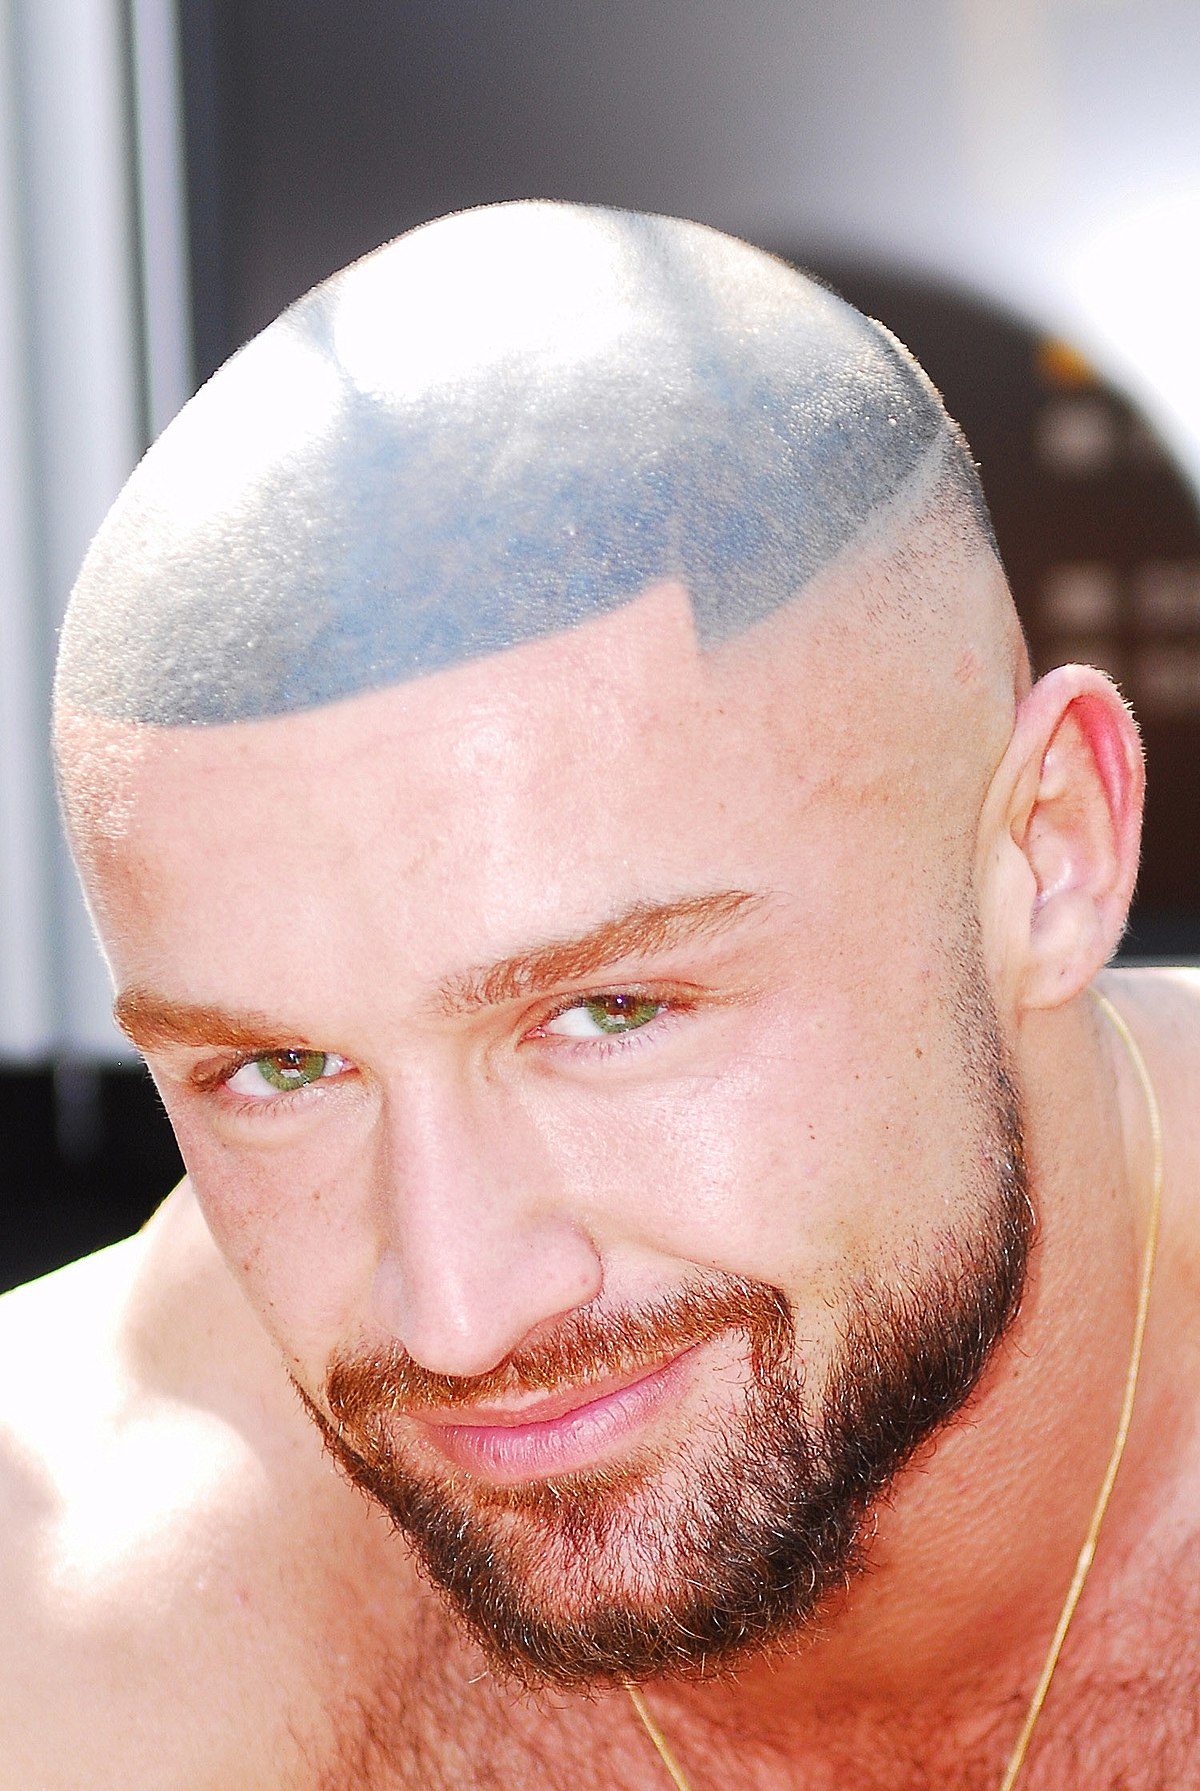 Image Result For Head Tattoo His Hair Clinic